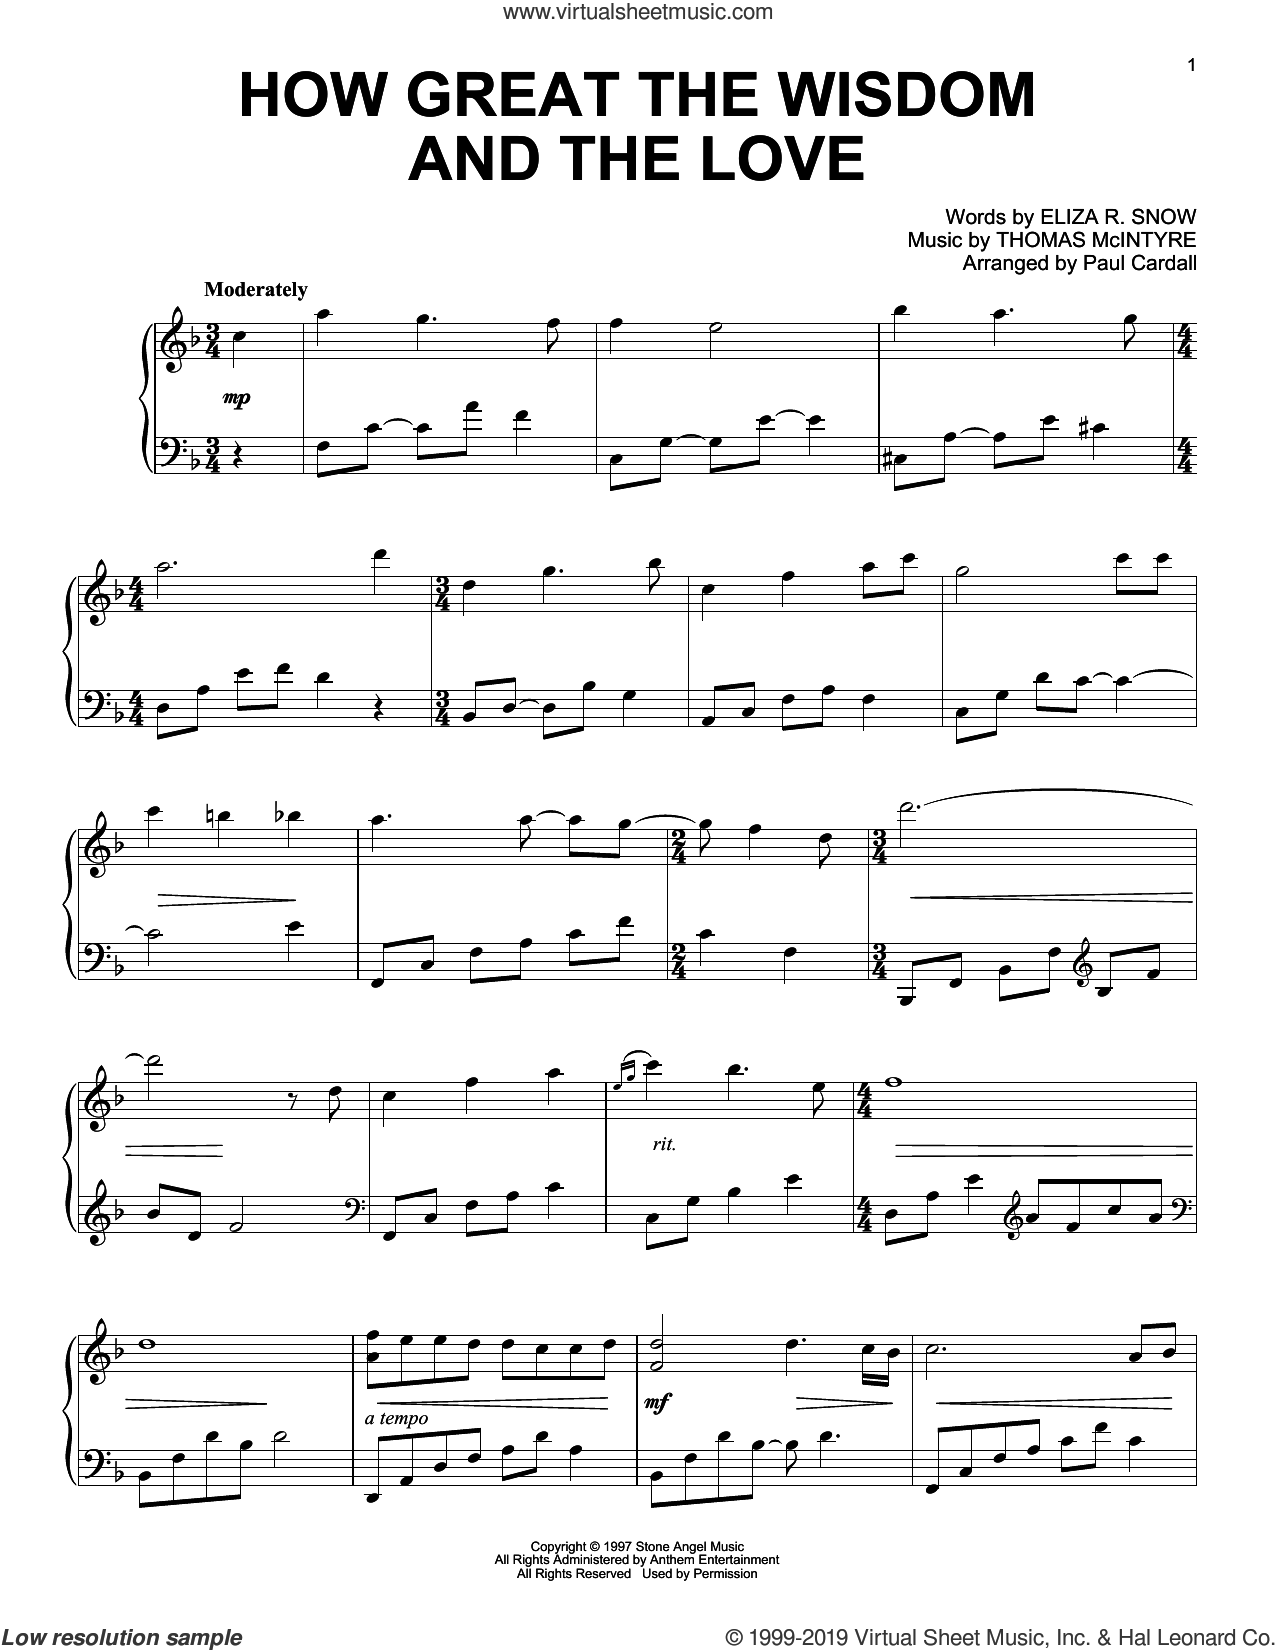 How Great The Wisdom And The Love (arr. Paul Cardall) sheet music for piano solo by Thomas McIntyre, Paul Cardall and Eliza R. Snow, intermediate skill level